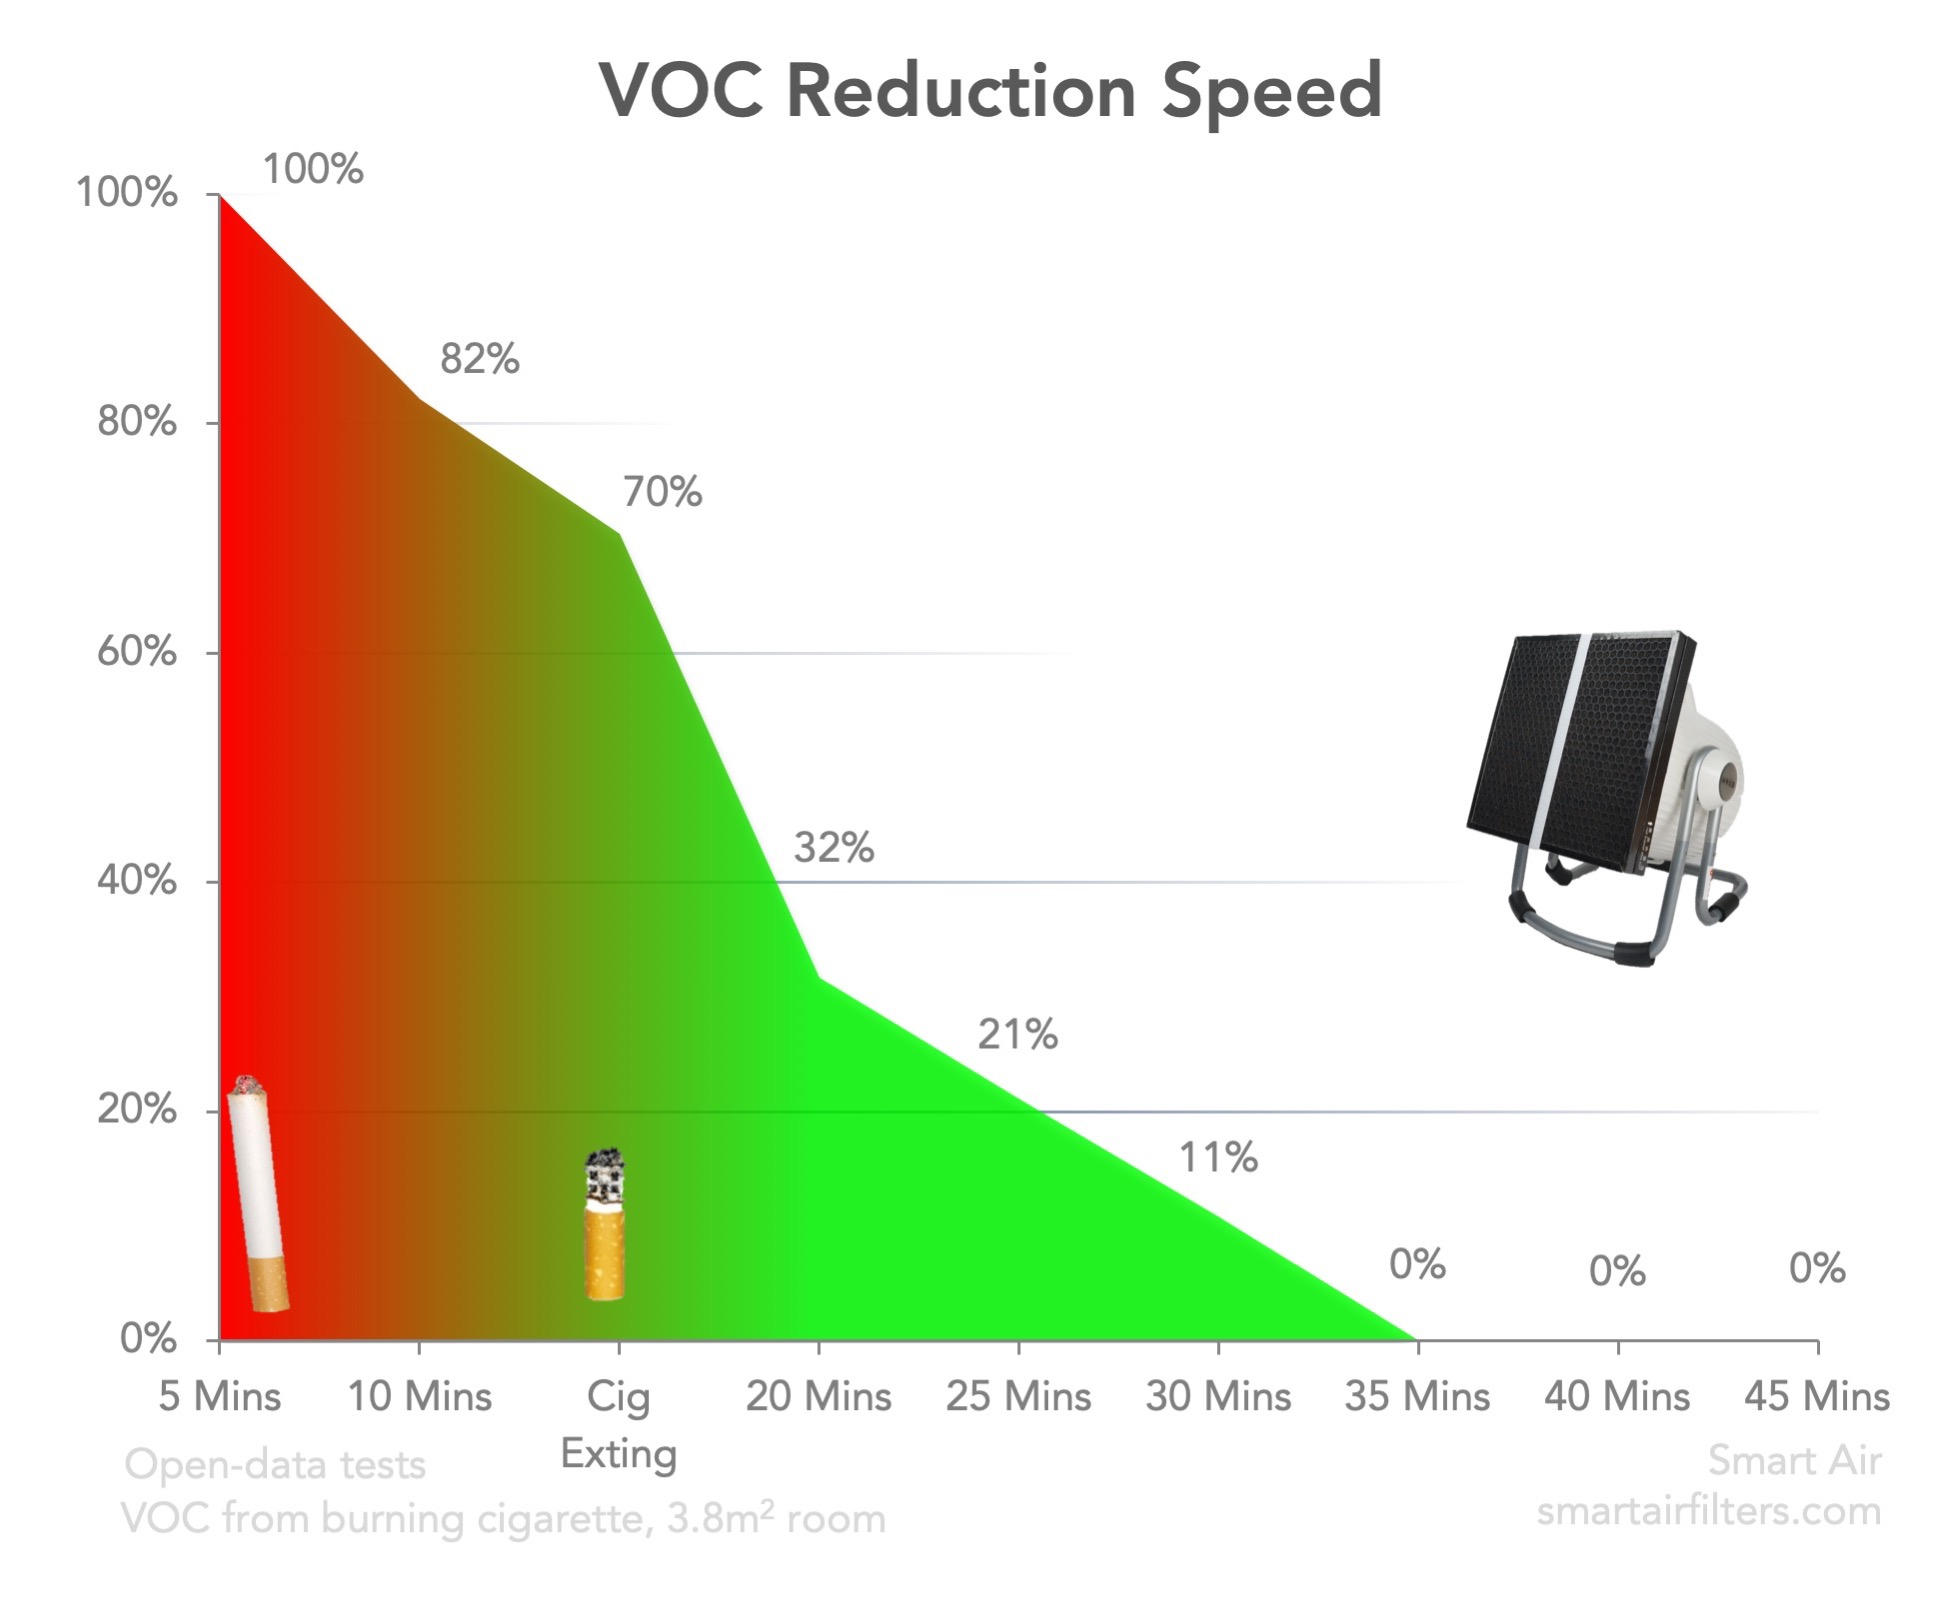 Carbon VOC Reduction Speed